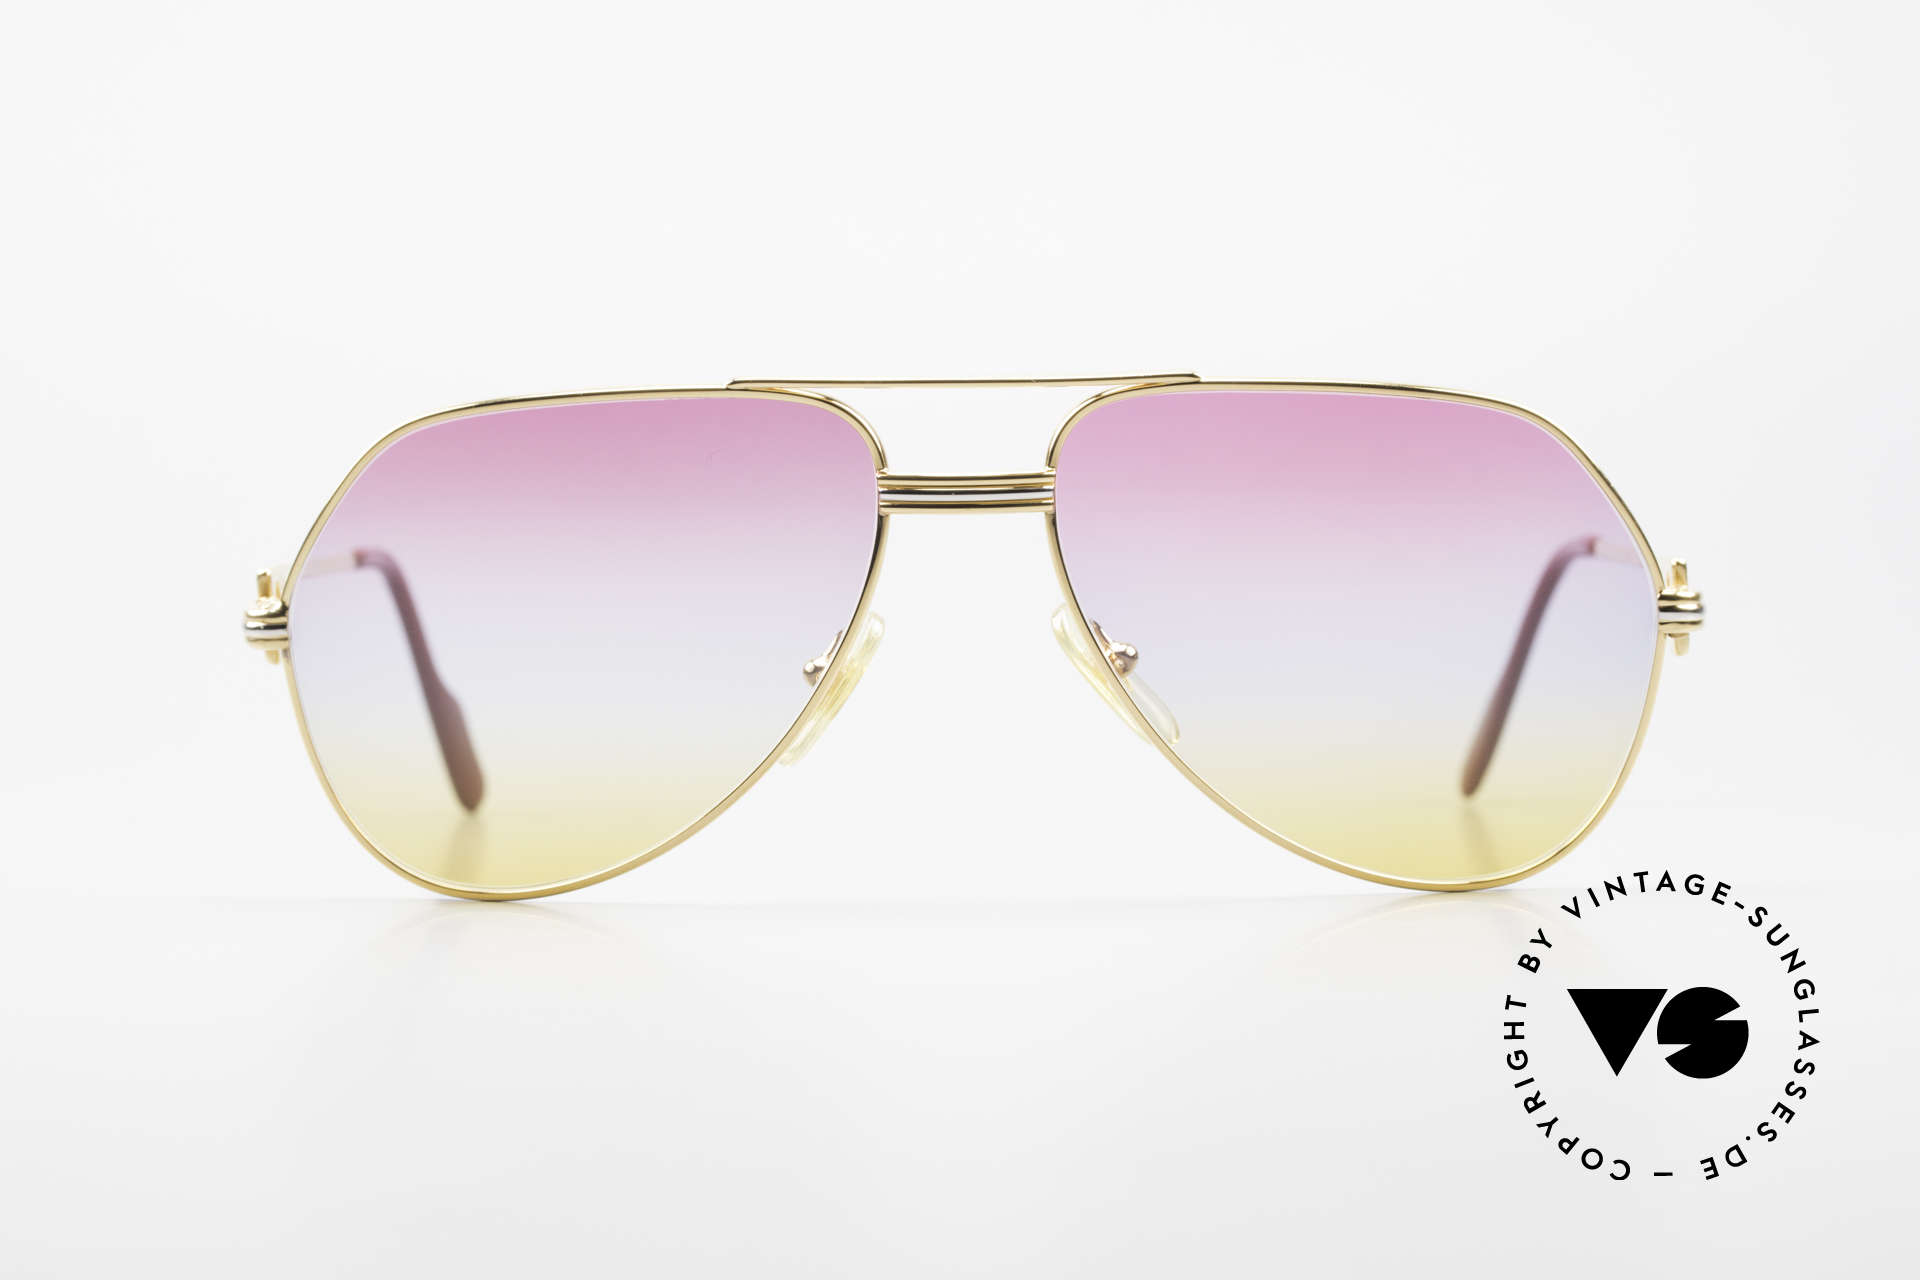 """Cartier Vendome LC - M 80's 90's Aviator Sunglasses, mod. """"Vendome"""" was launched in 1983 & made till 1997, Made for Men and Women"""